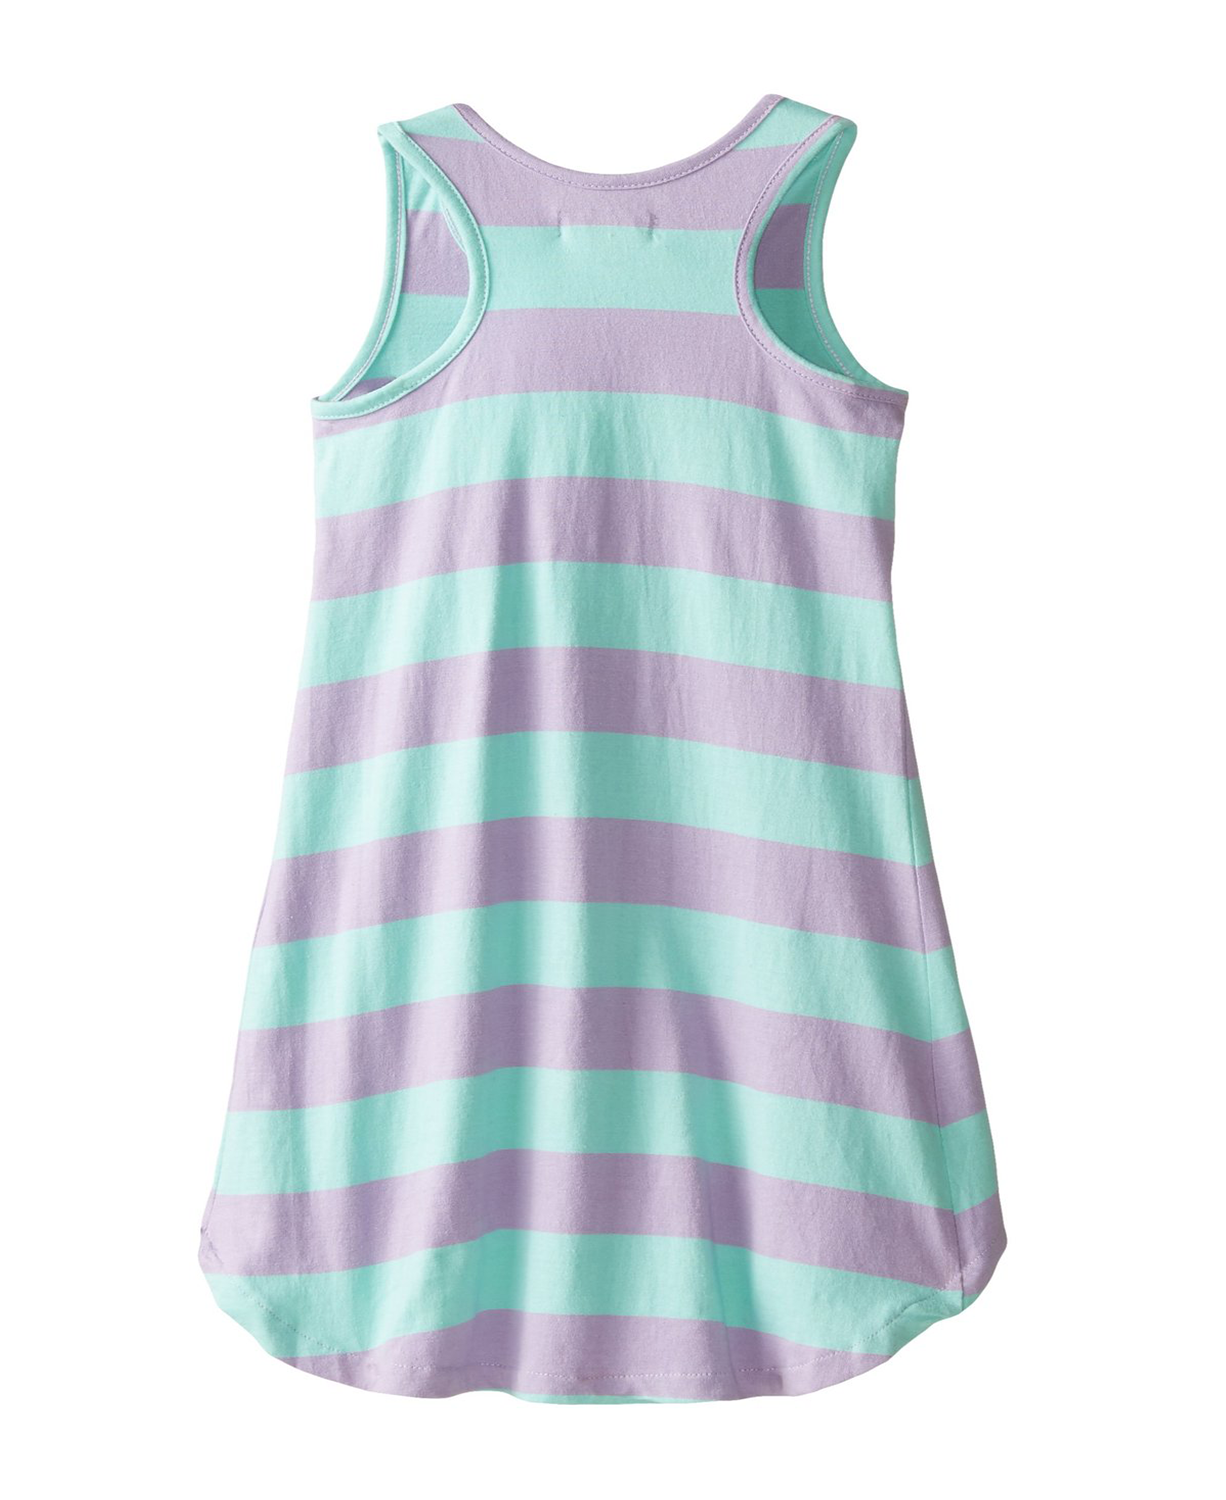 u s polo assn girls striped hi lo dress toddler dress baby clothes baby